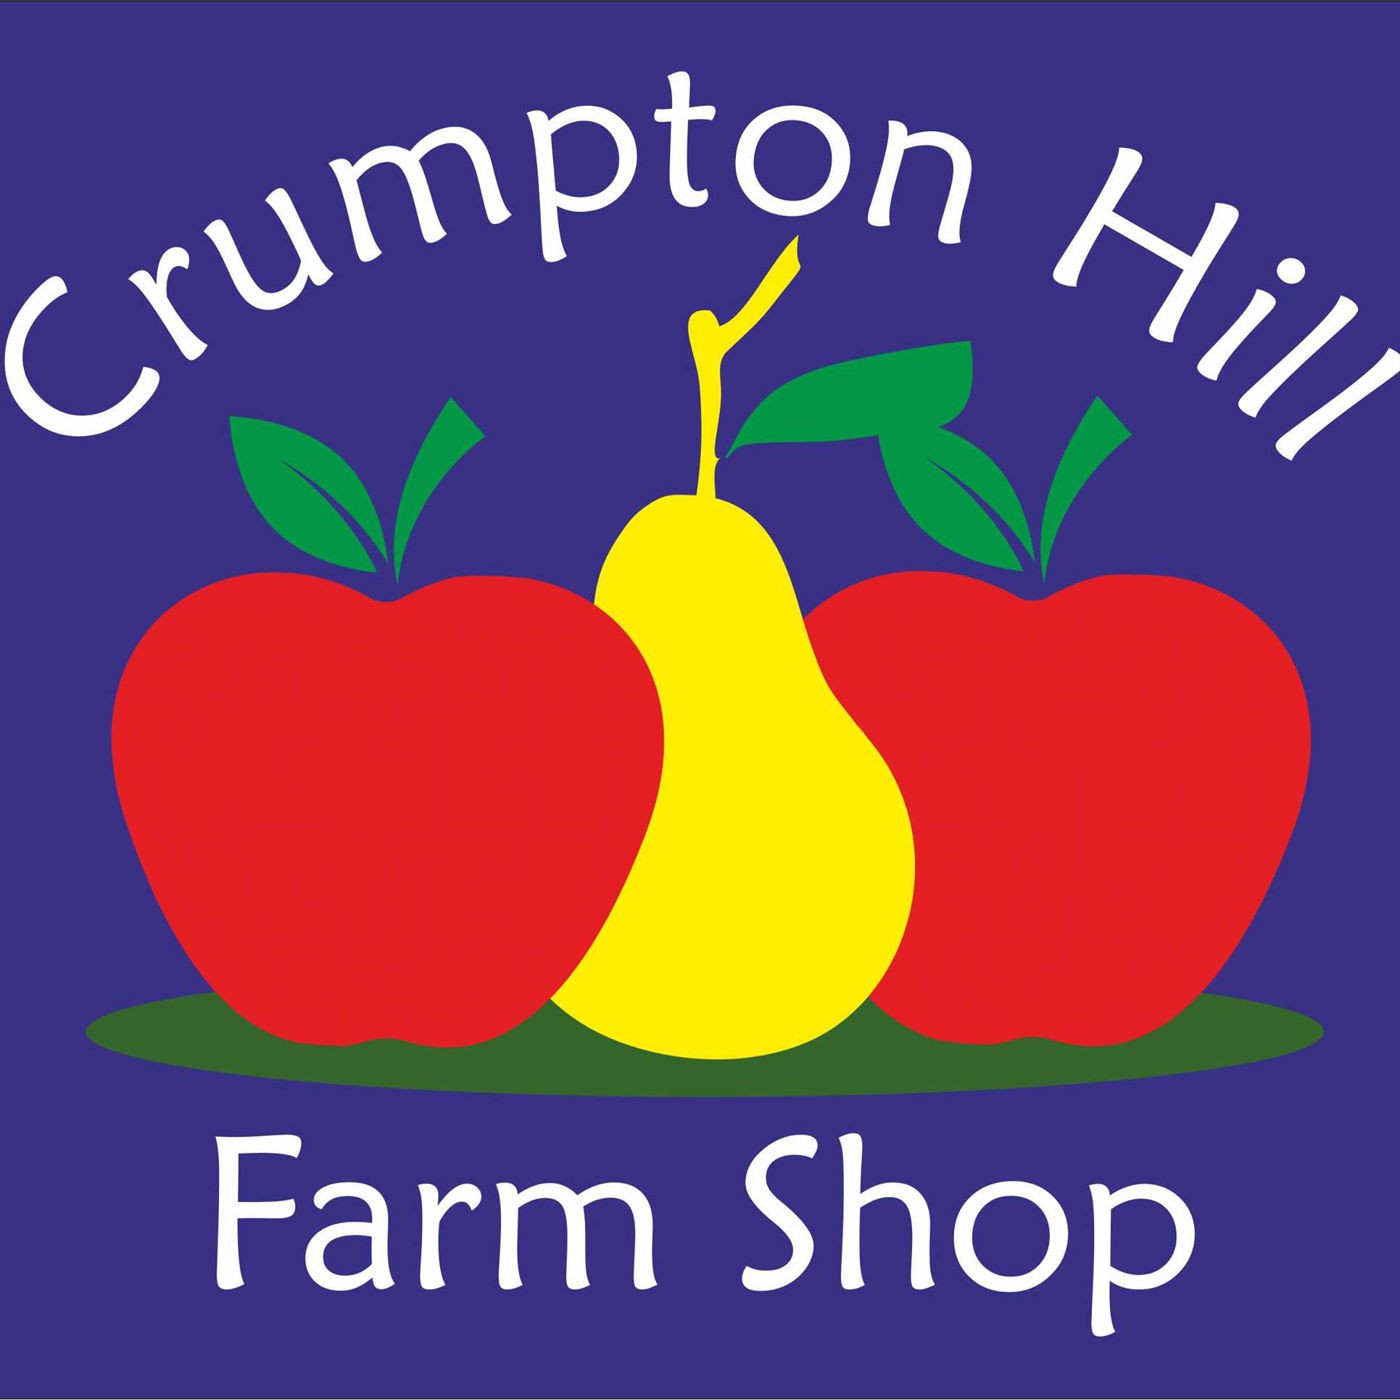 Crumpton Hill Farm Shop